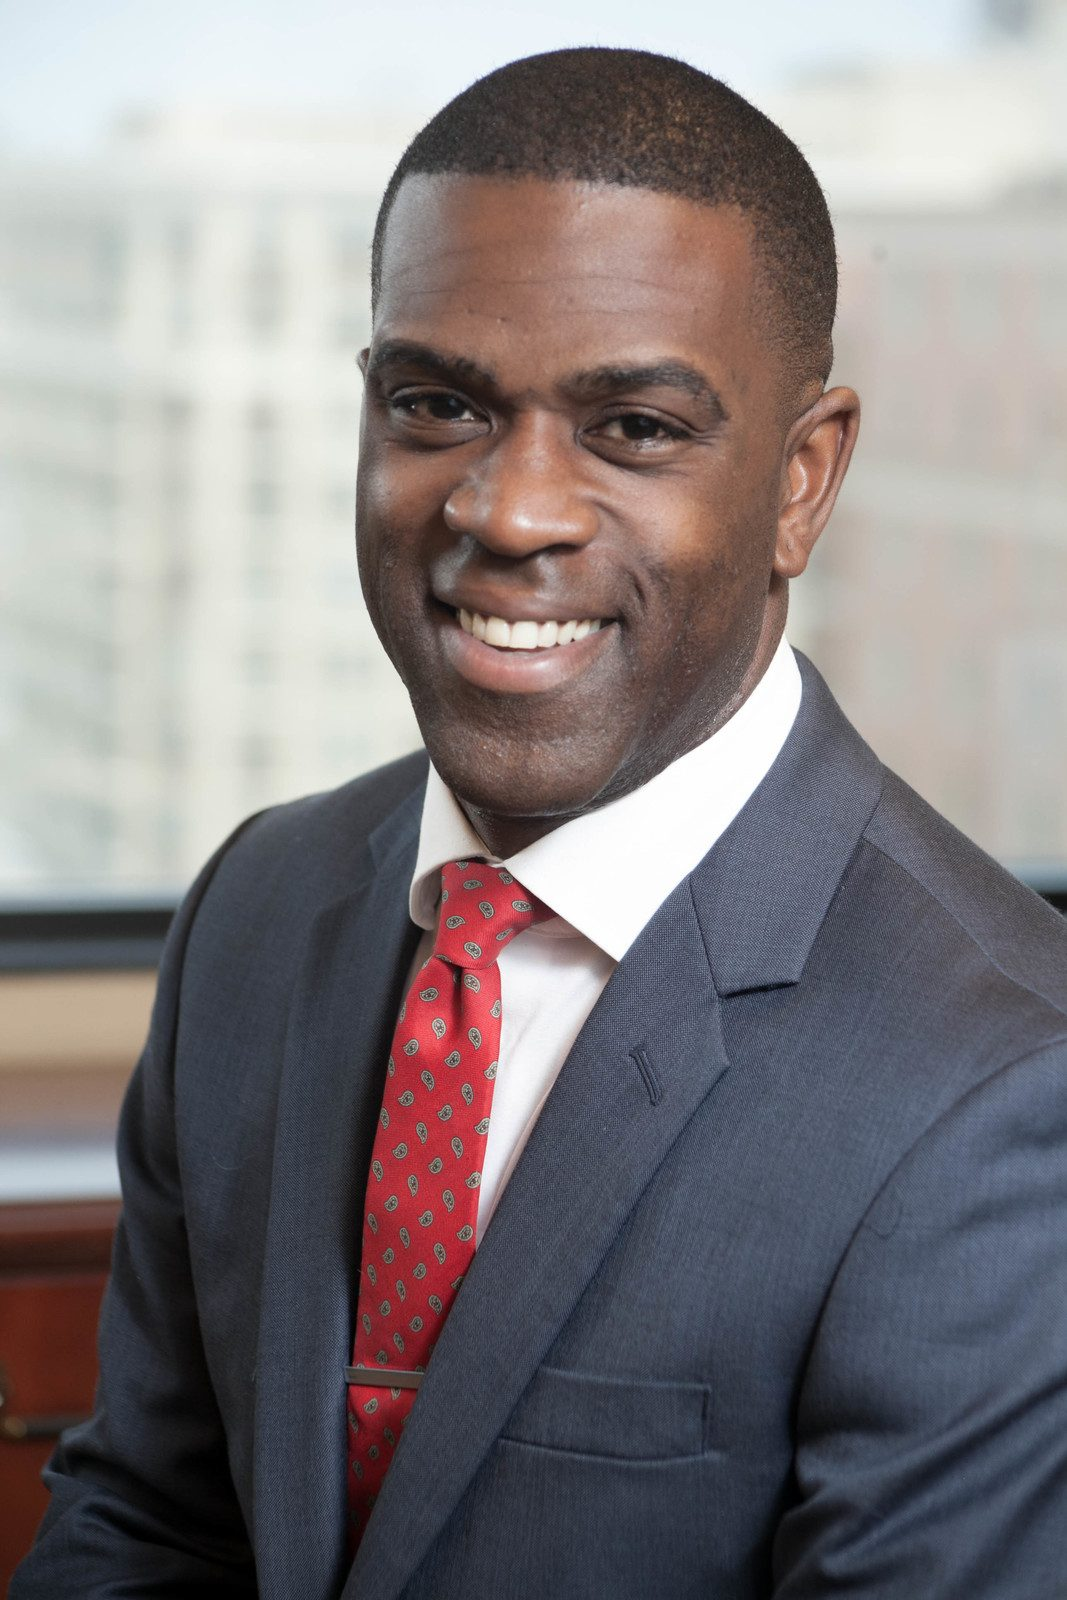 Photo of Michael Andre Dobbins - Morgan Stanley